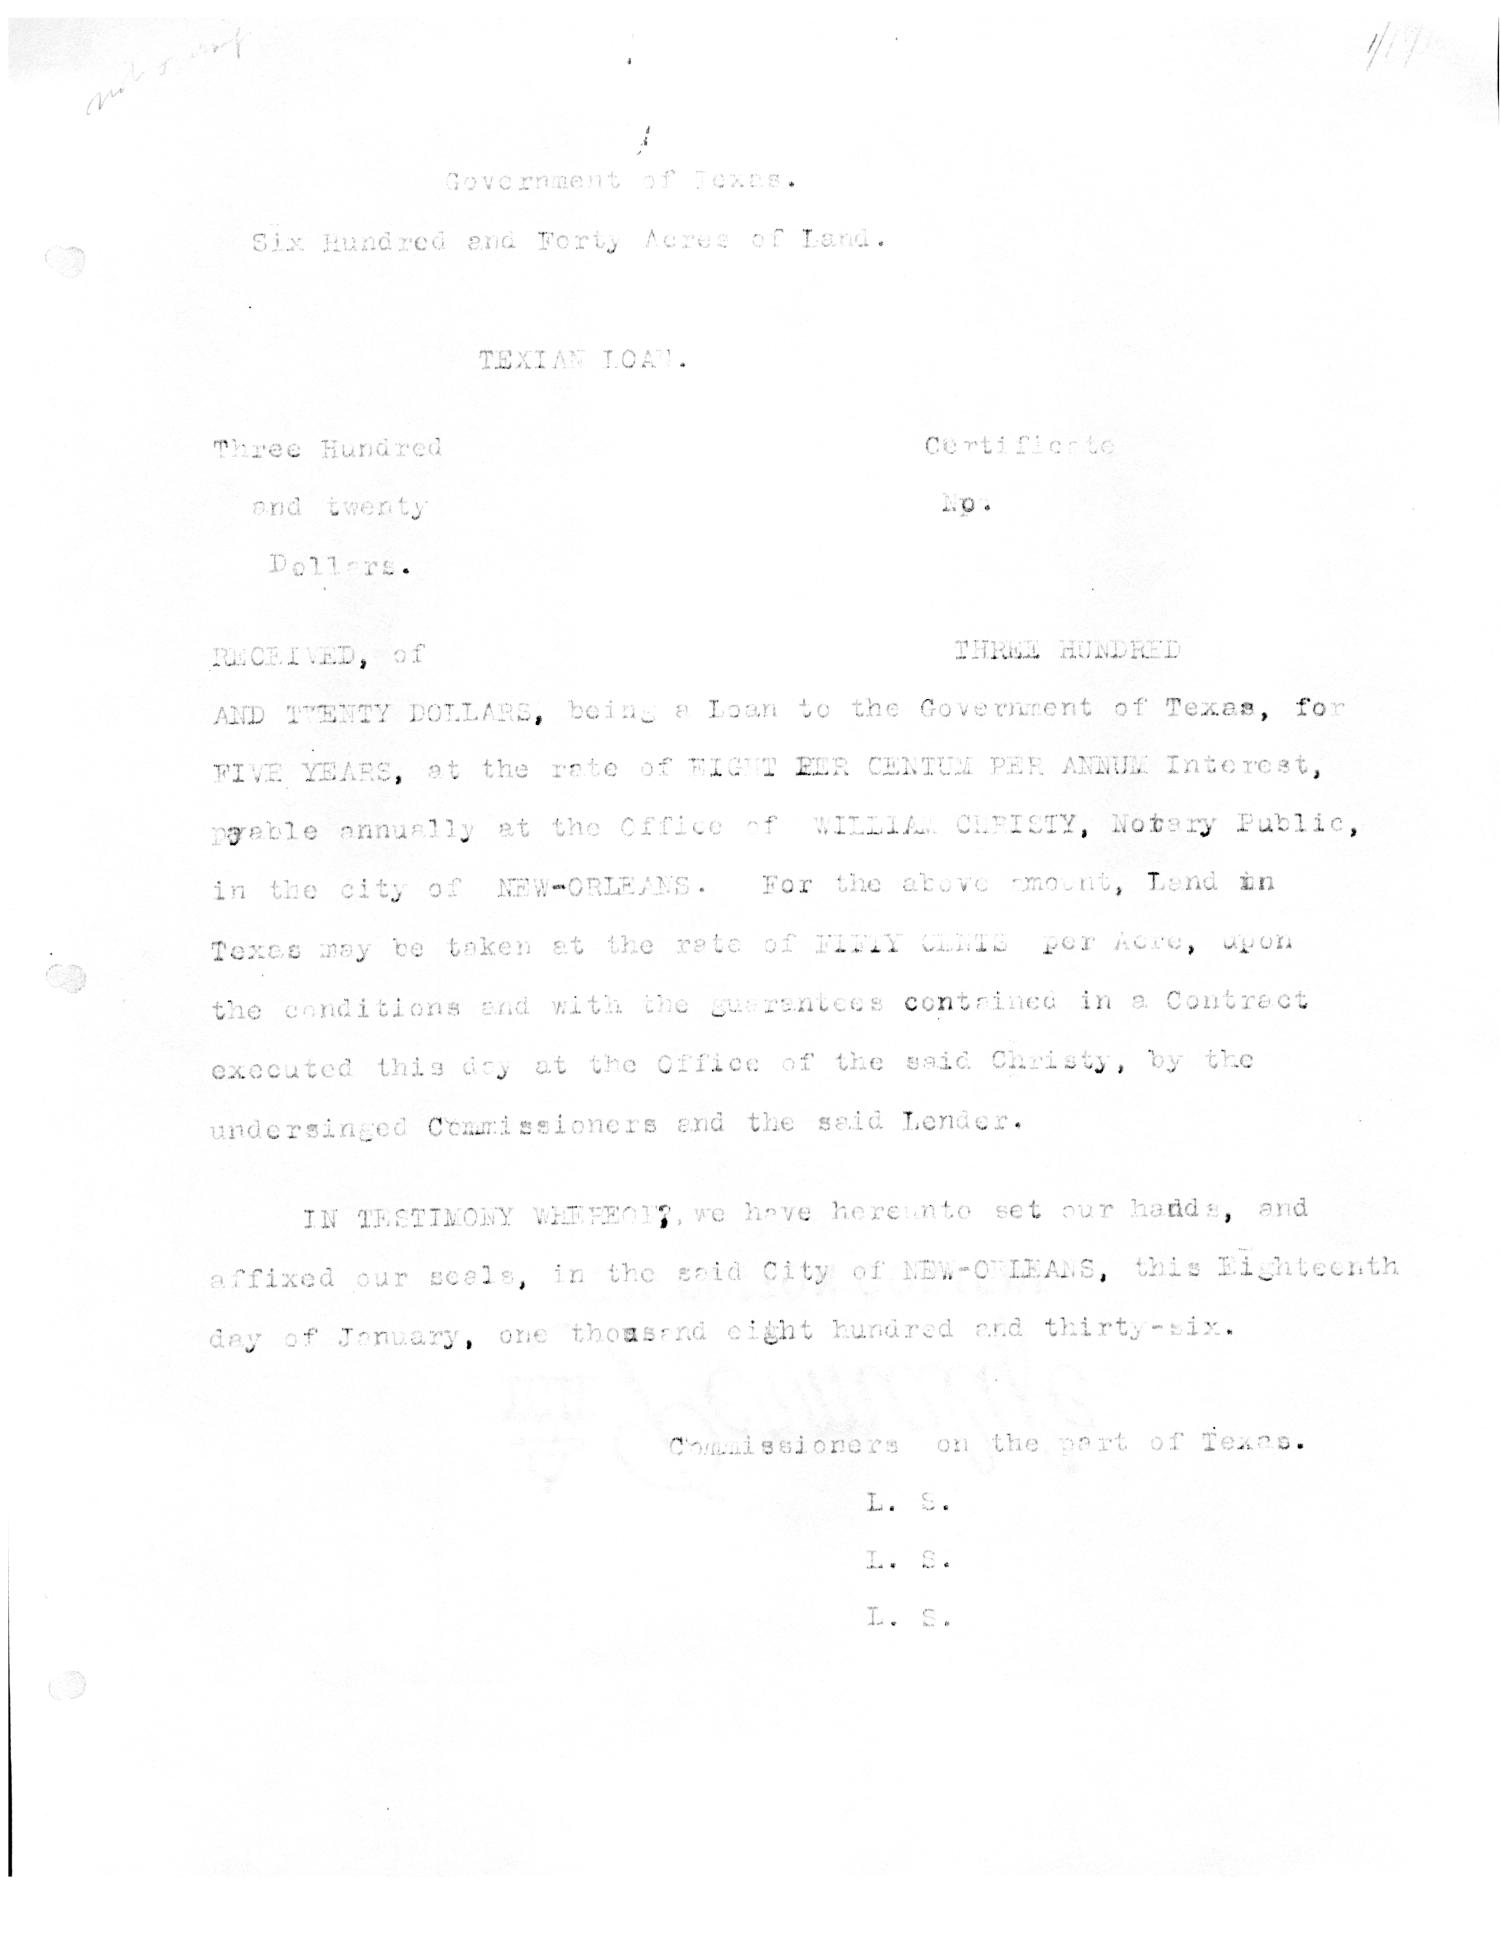 [Transcript of promissory note for the Government of Texas, January 18, 1836]                                                                                                      [Sequence #]: 1 of 1